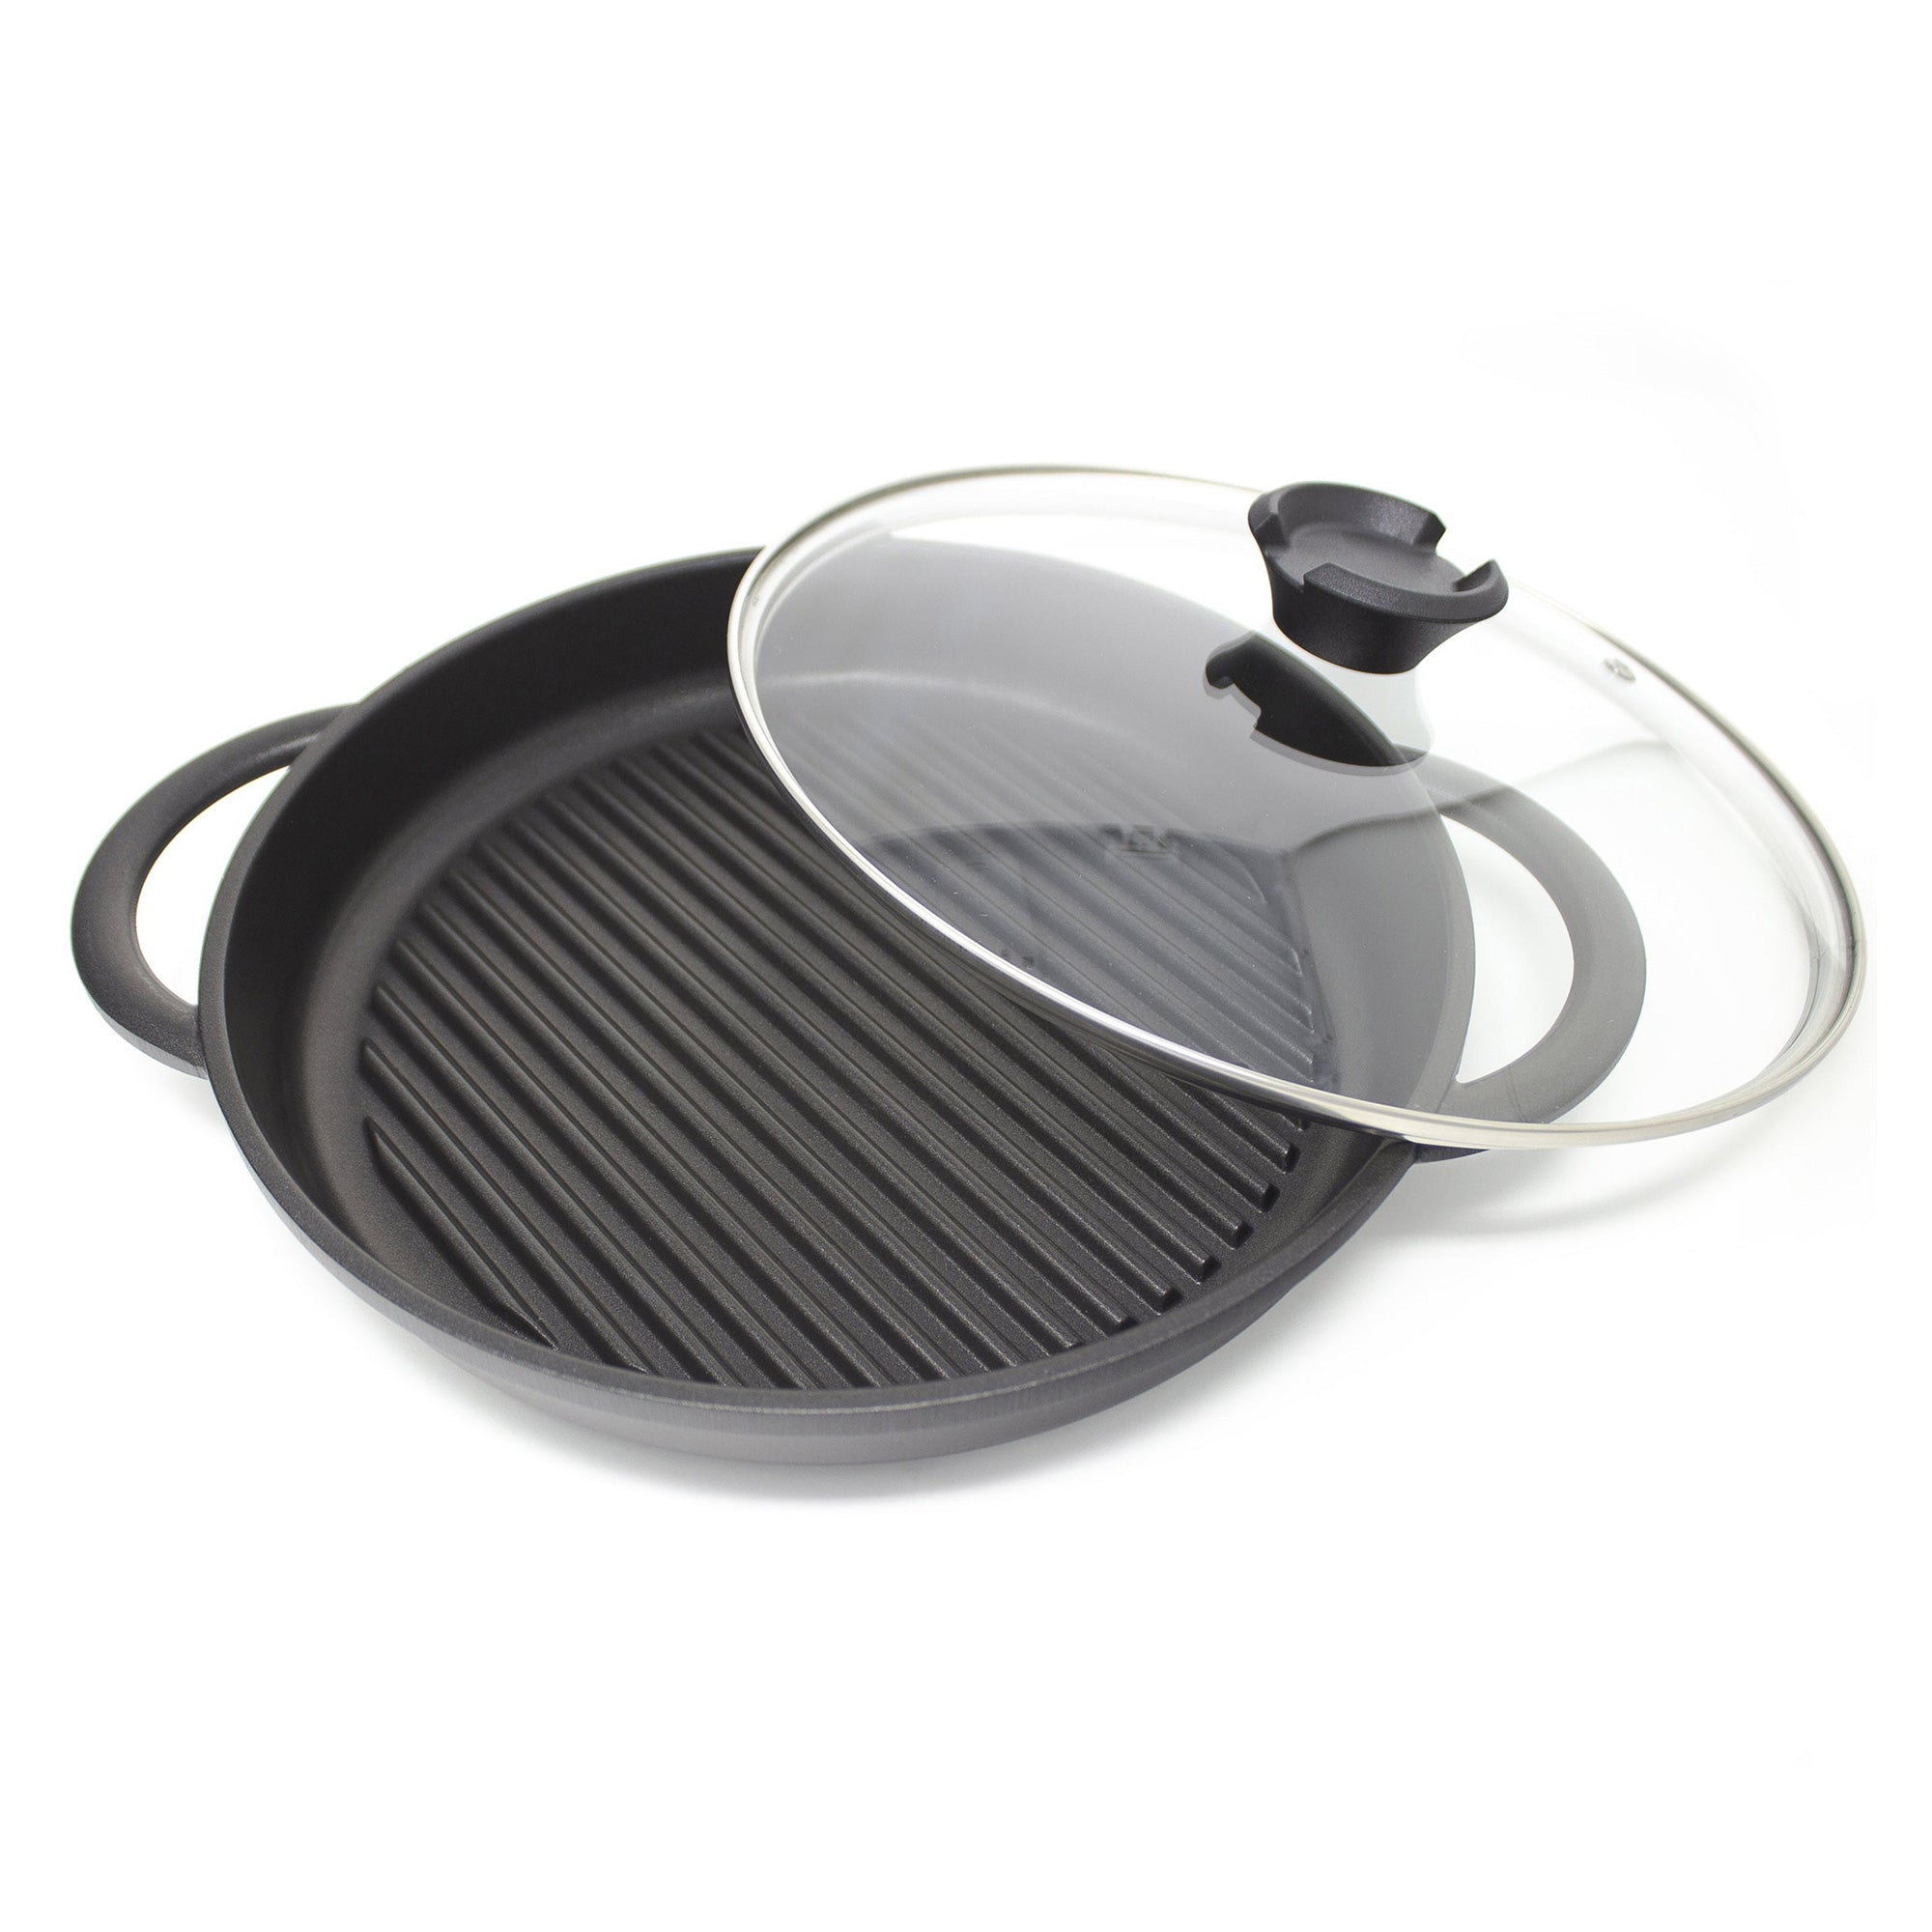 The Whatever Pan - Cast Aluminium Griddle Pan with Glass Lid - Pre-Order